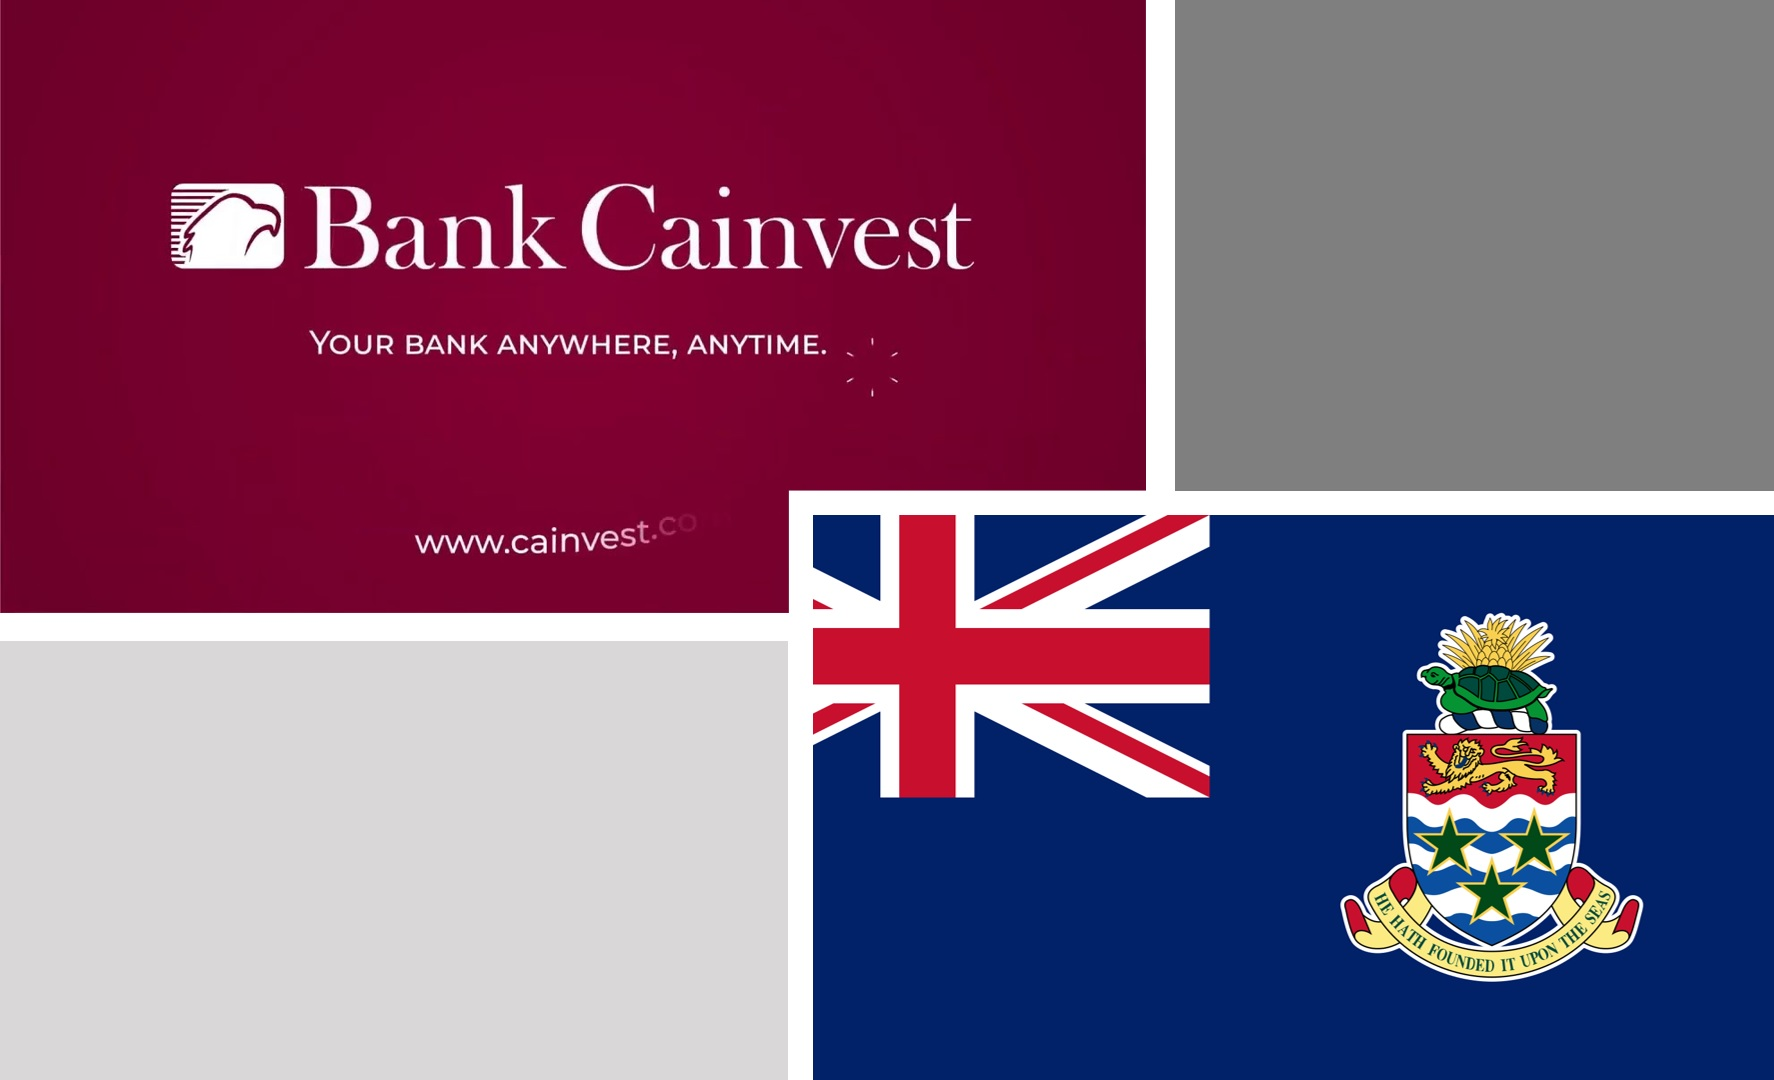 Cainevest Bank Cayman Islands